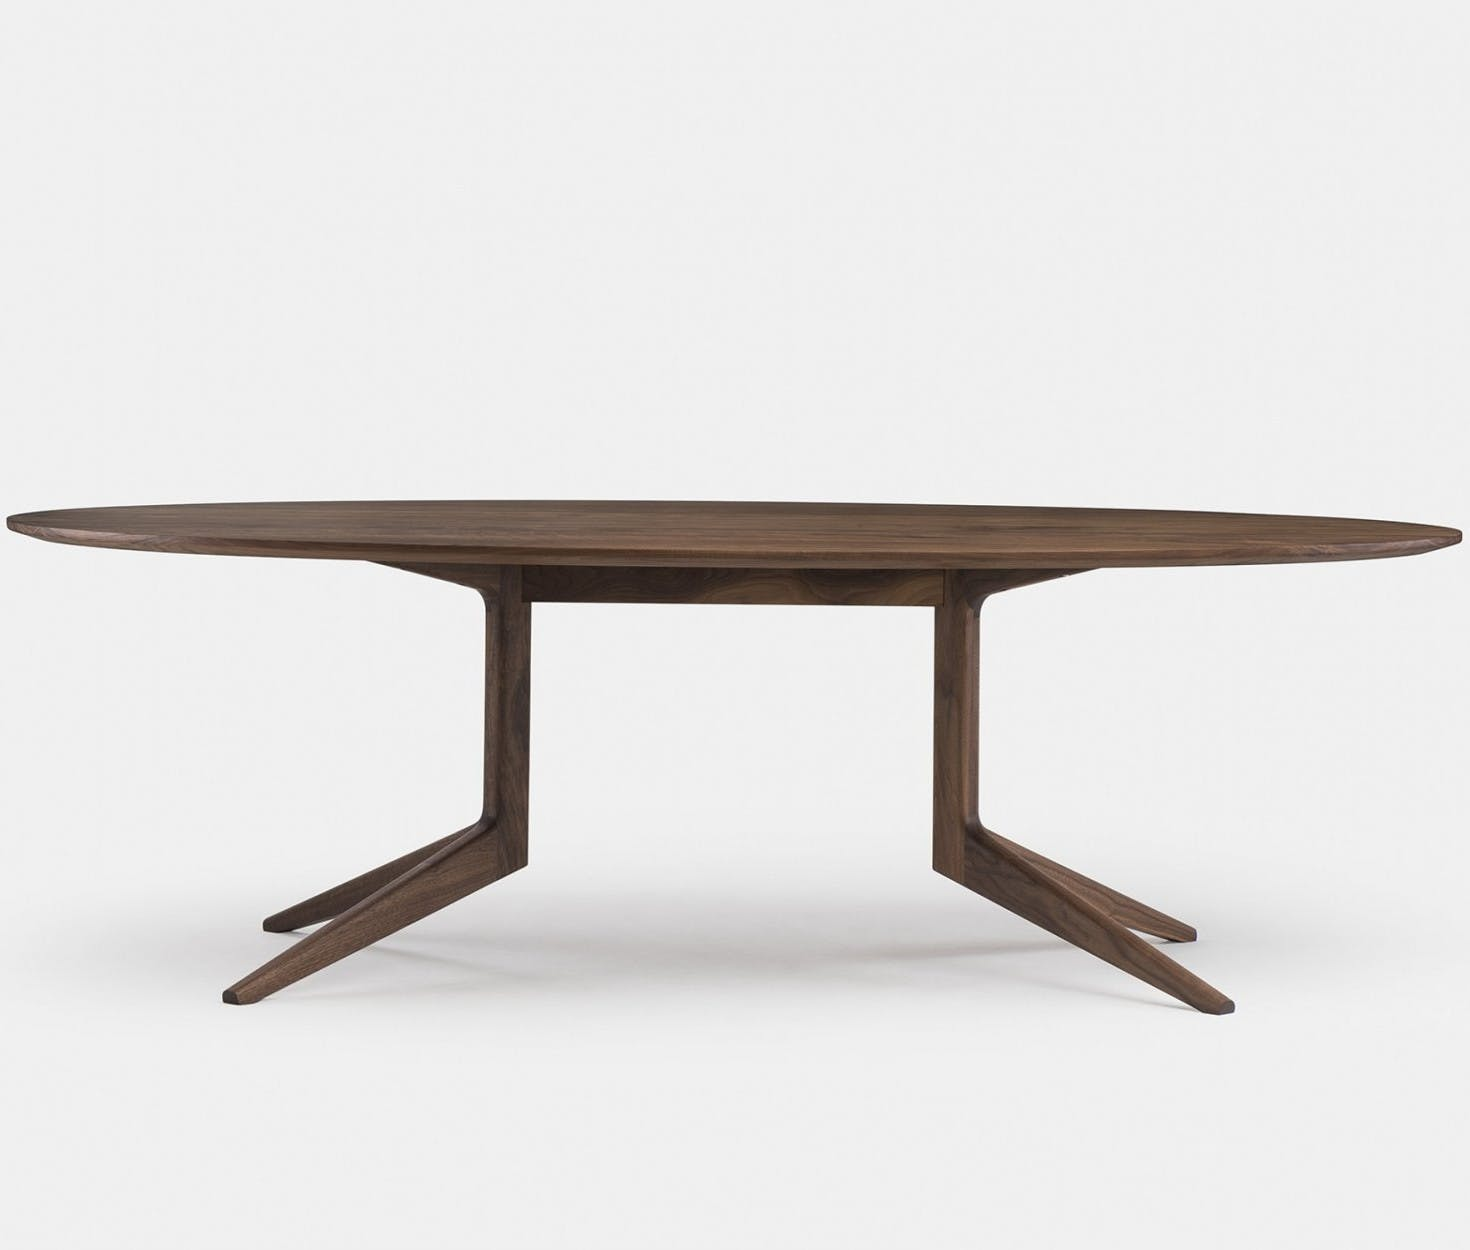 394Fm Light Oval Table By Matthew Hilton In Walnut Frontweb 1840X1250